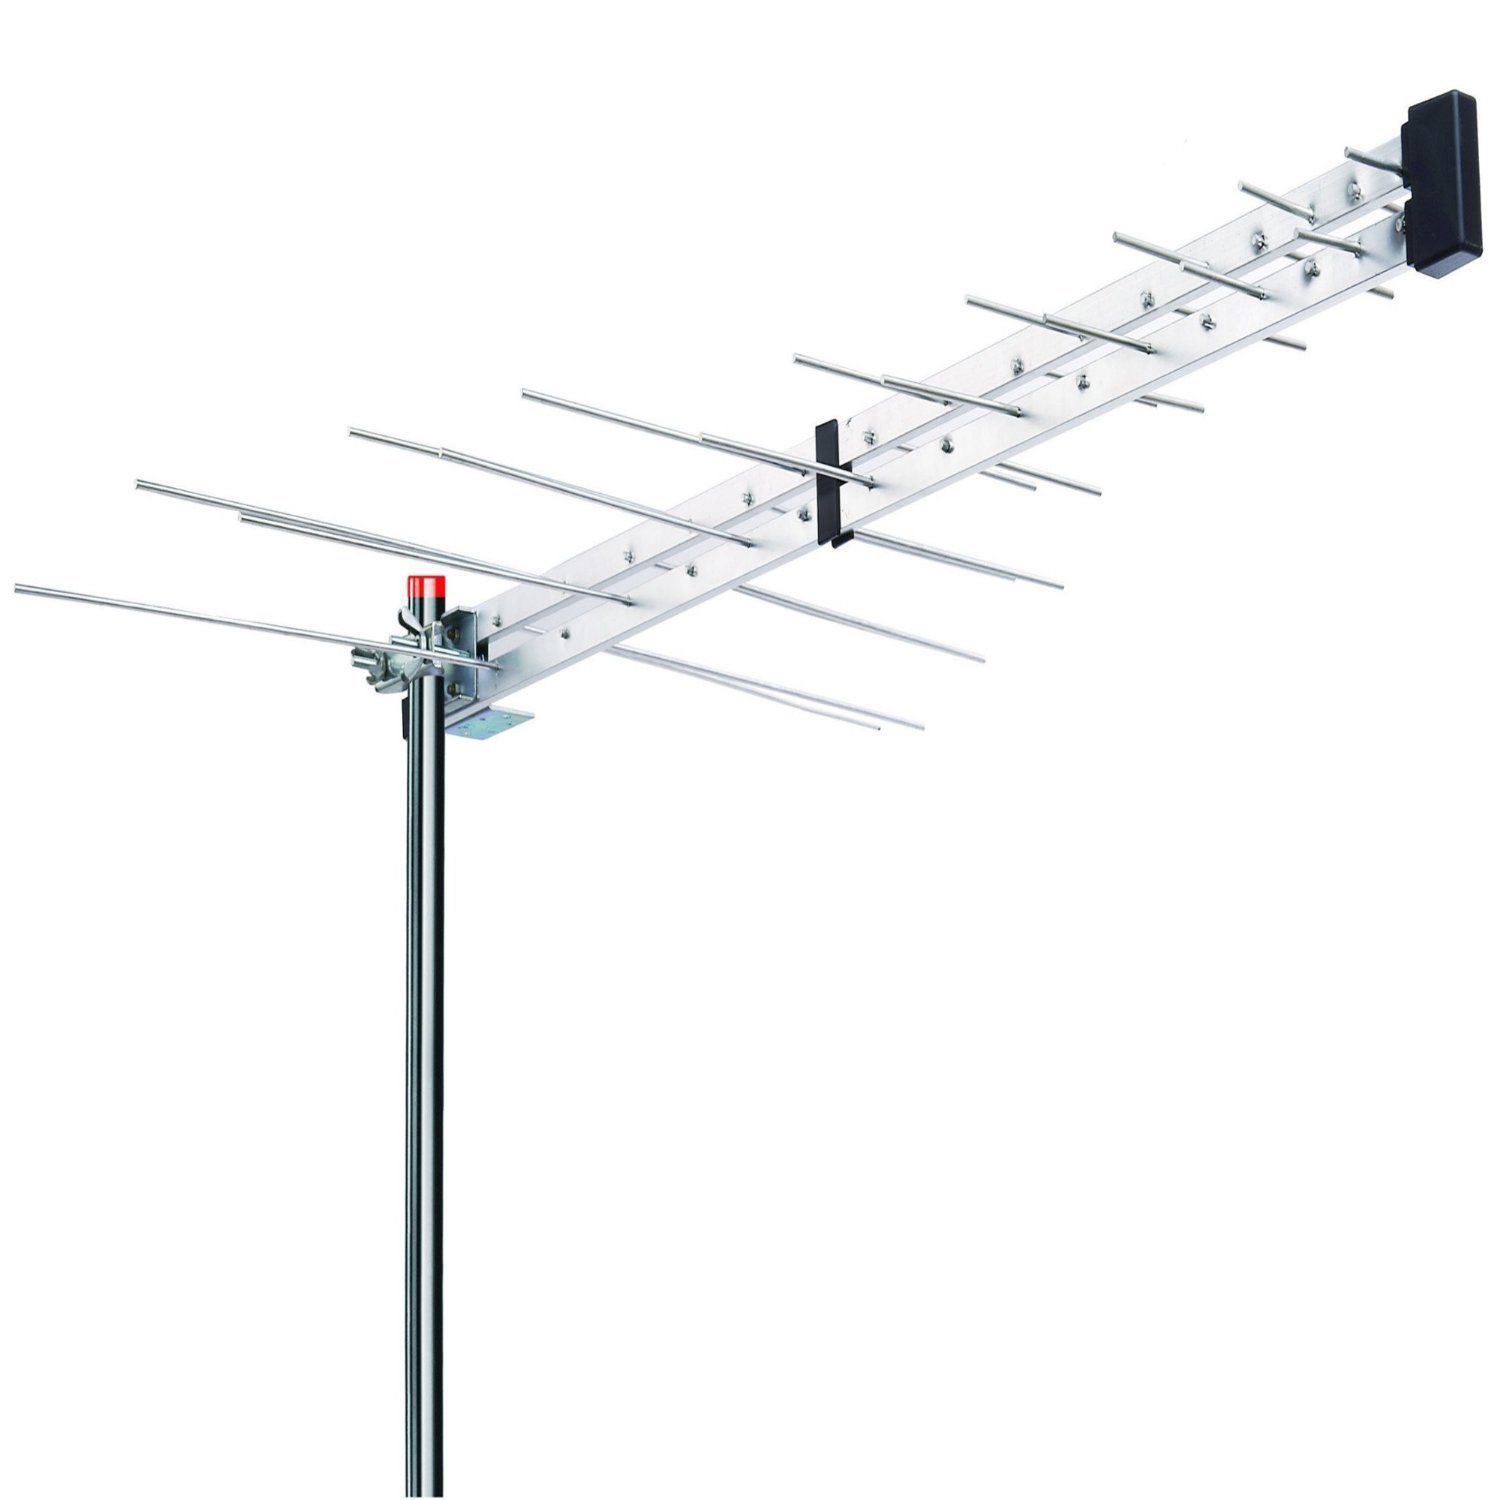 Boostwaves Yagi Optimized Hdtv Digital Outdoor Directional